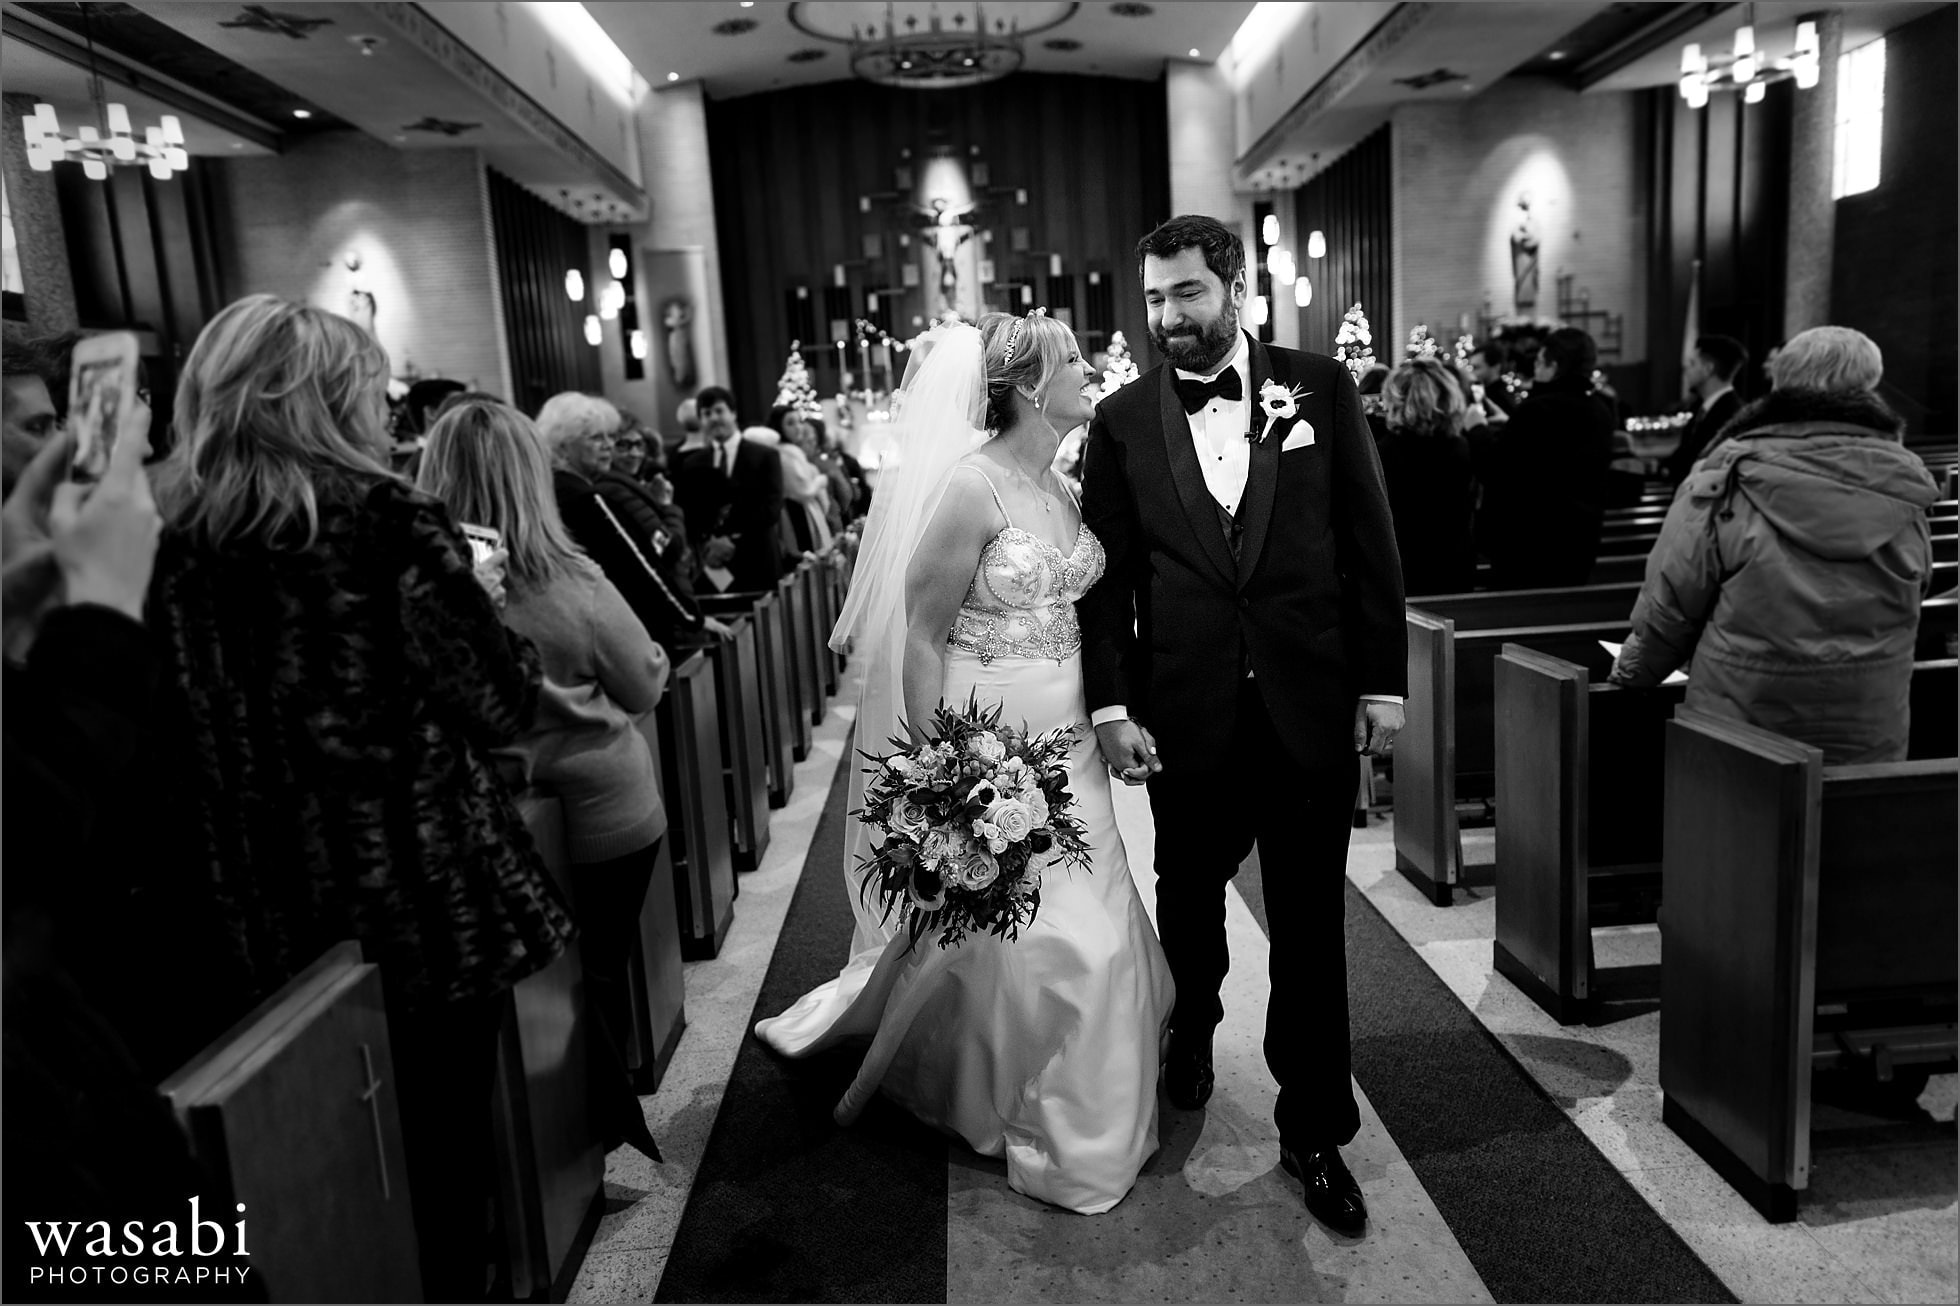 bride and groom walk down the aisle after wedding ceremony at Immaculate Conception Catholic Church in Chicago